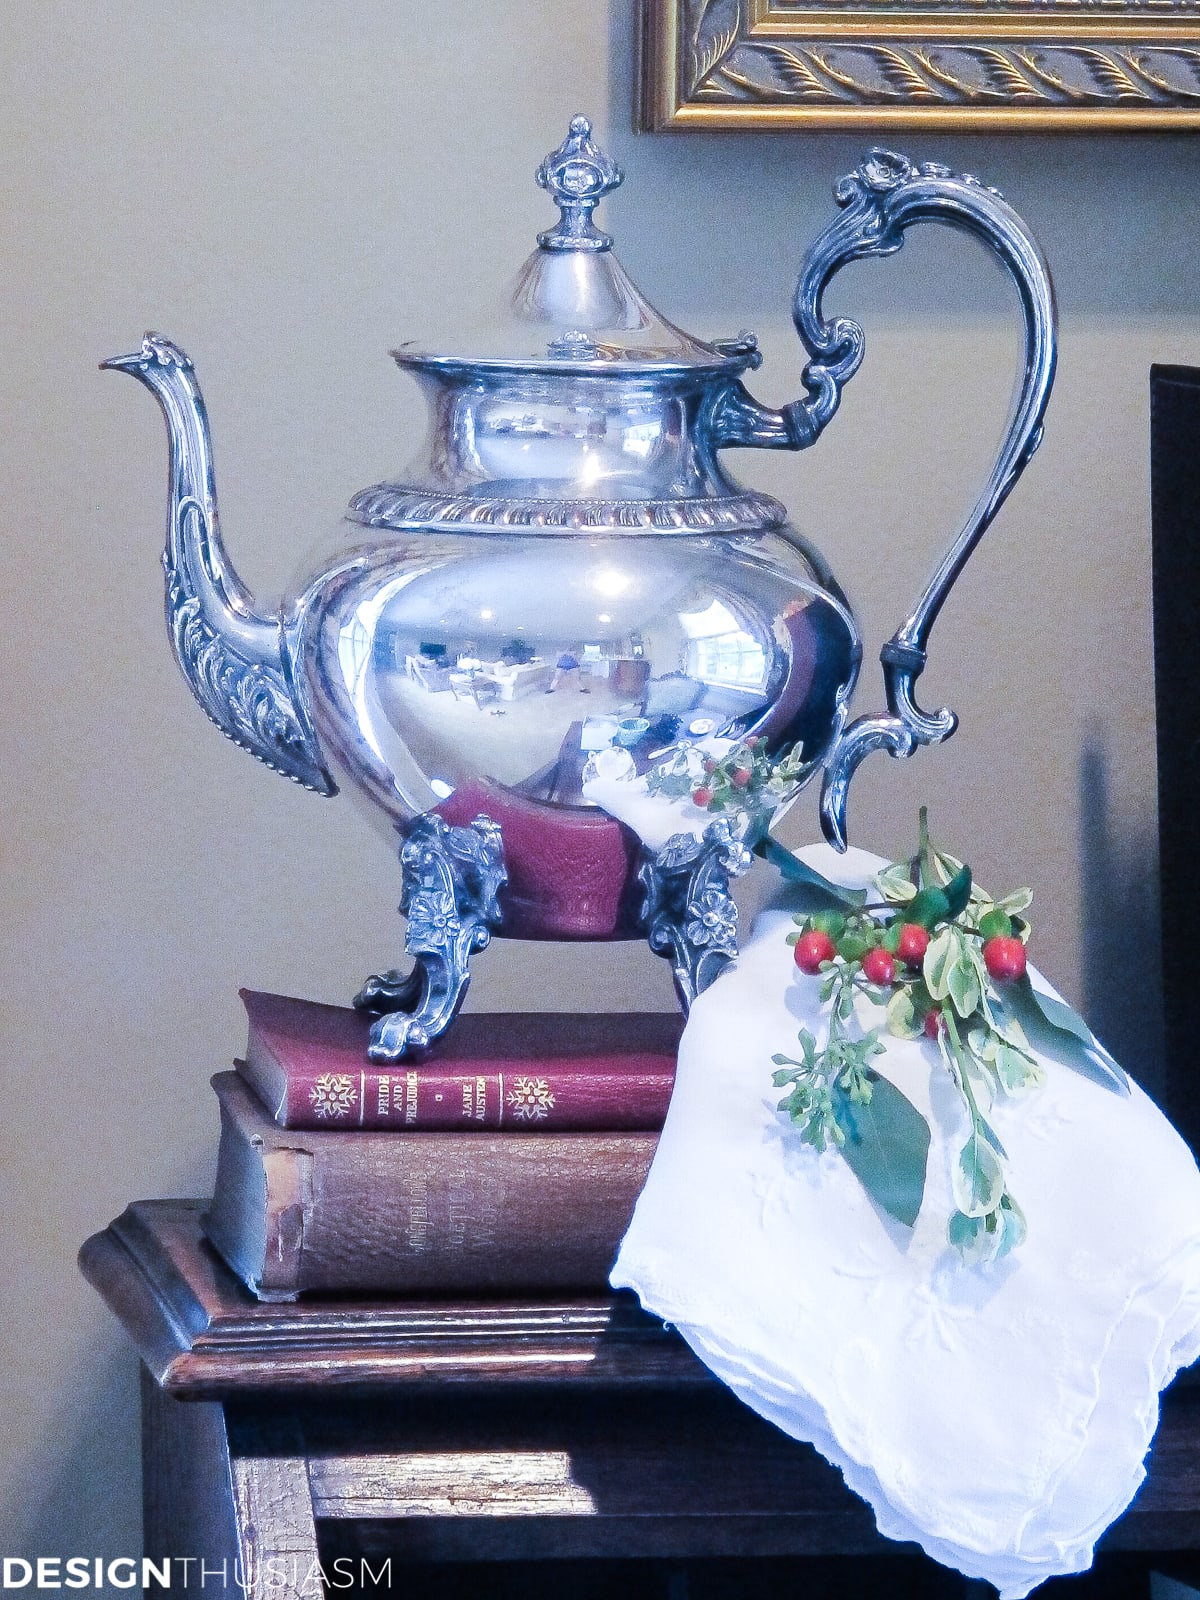 Christmas decoration ideas silver teapot